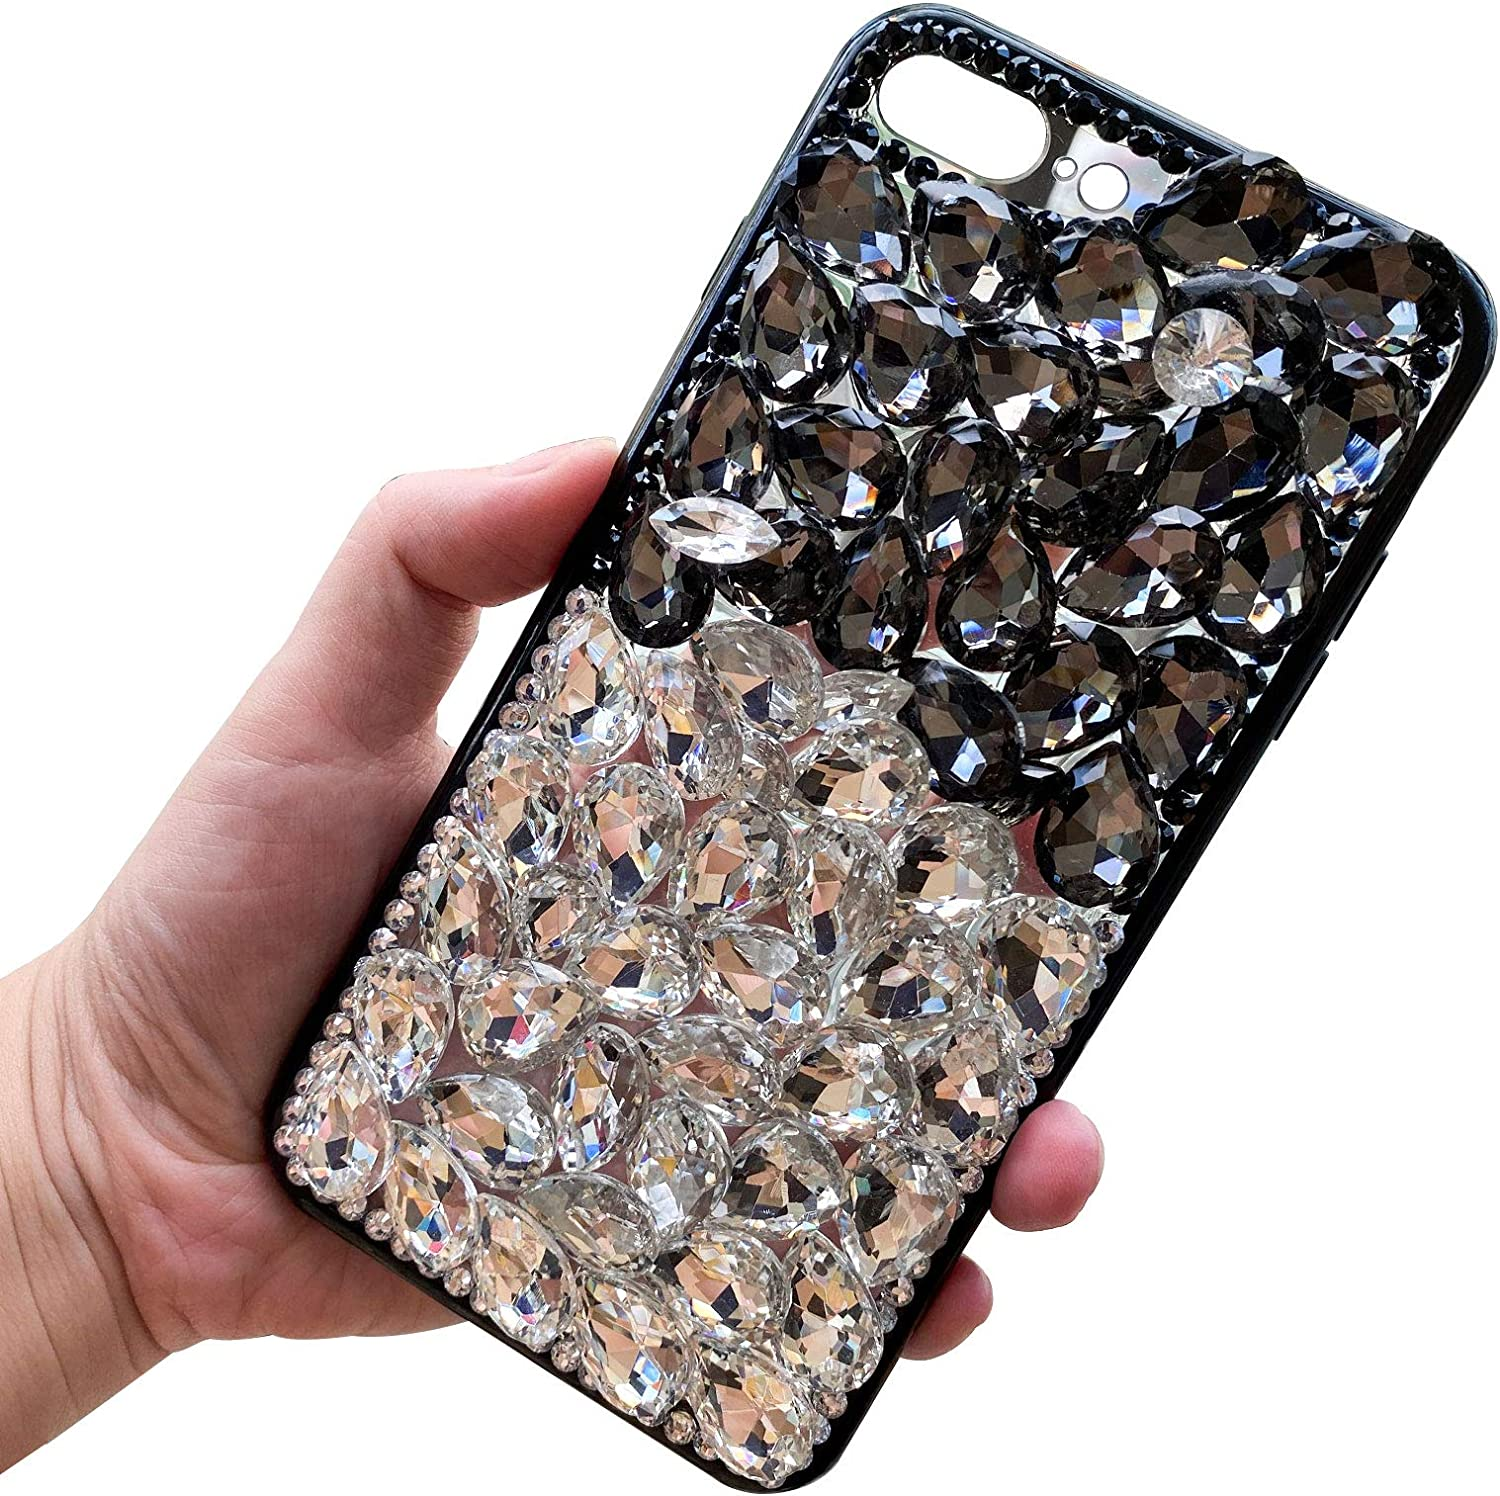 Bling Diamond Case for iPhone 8 Plus / 7 Plus 5.5 Inch, LCHDA Glitter Clear Crystal Full Diamonds Luxury Sparkle Transparent Rhinestone Protective Phone Case Cover for Woman Girls - White & Black